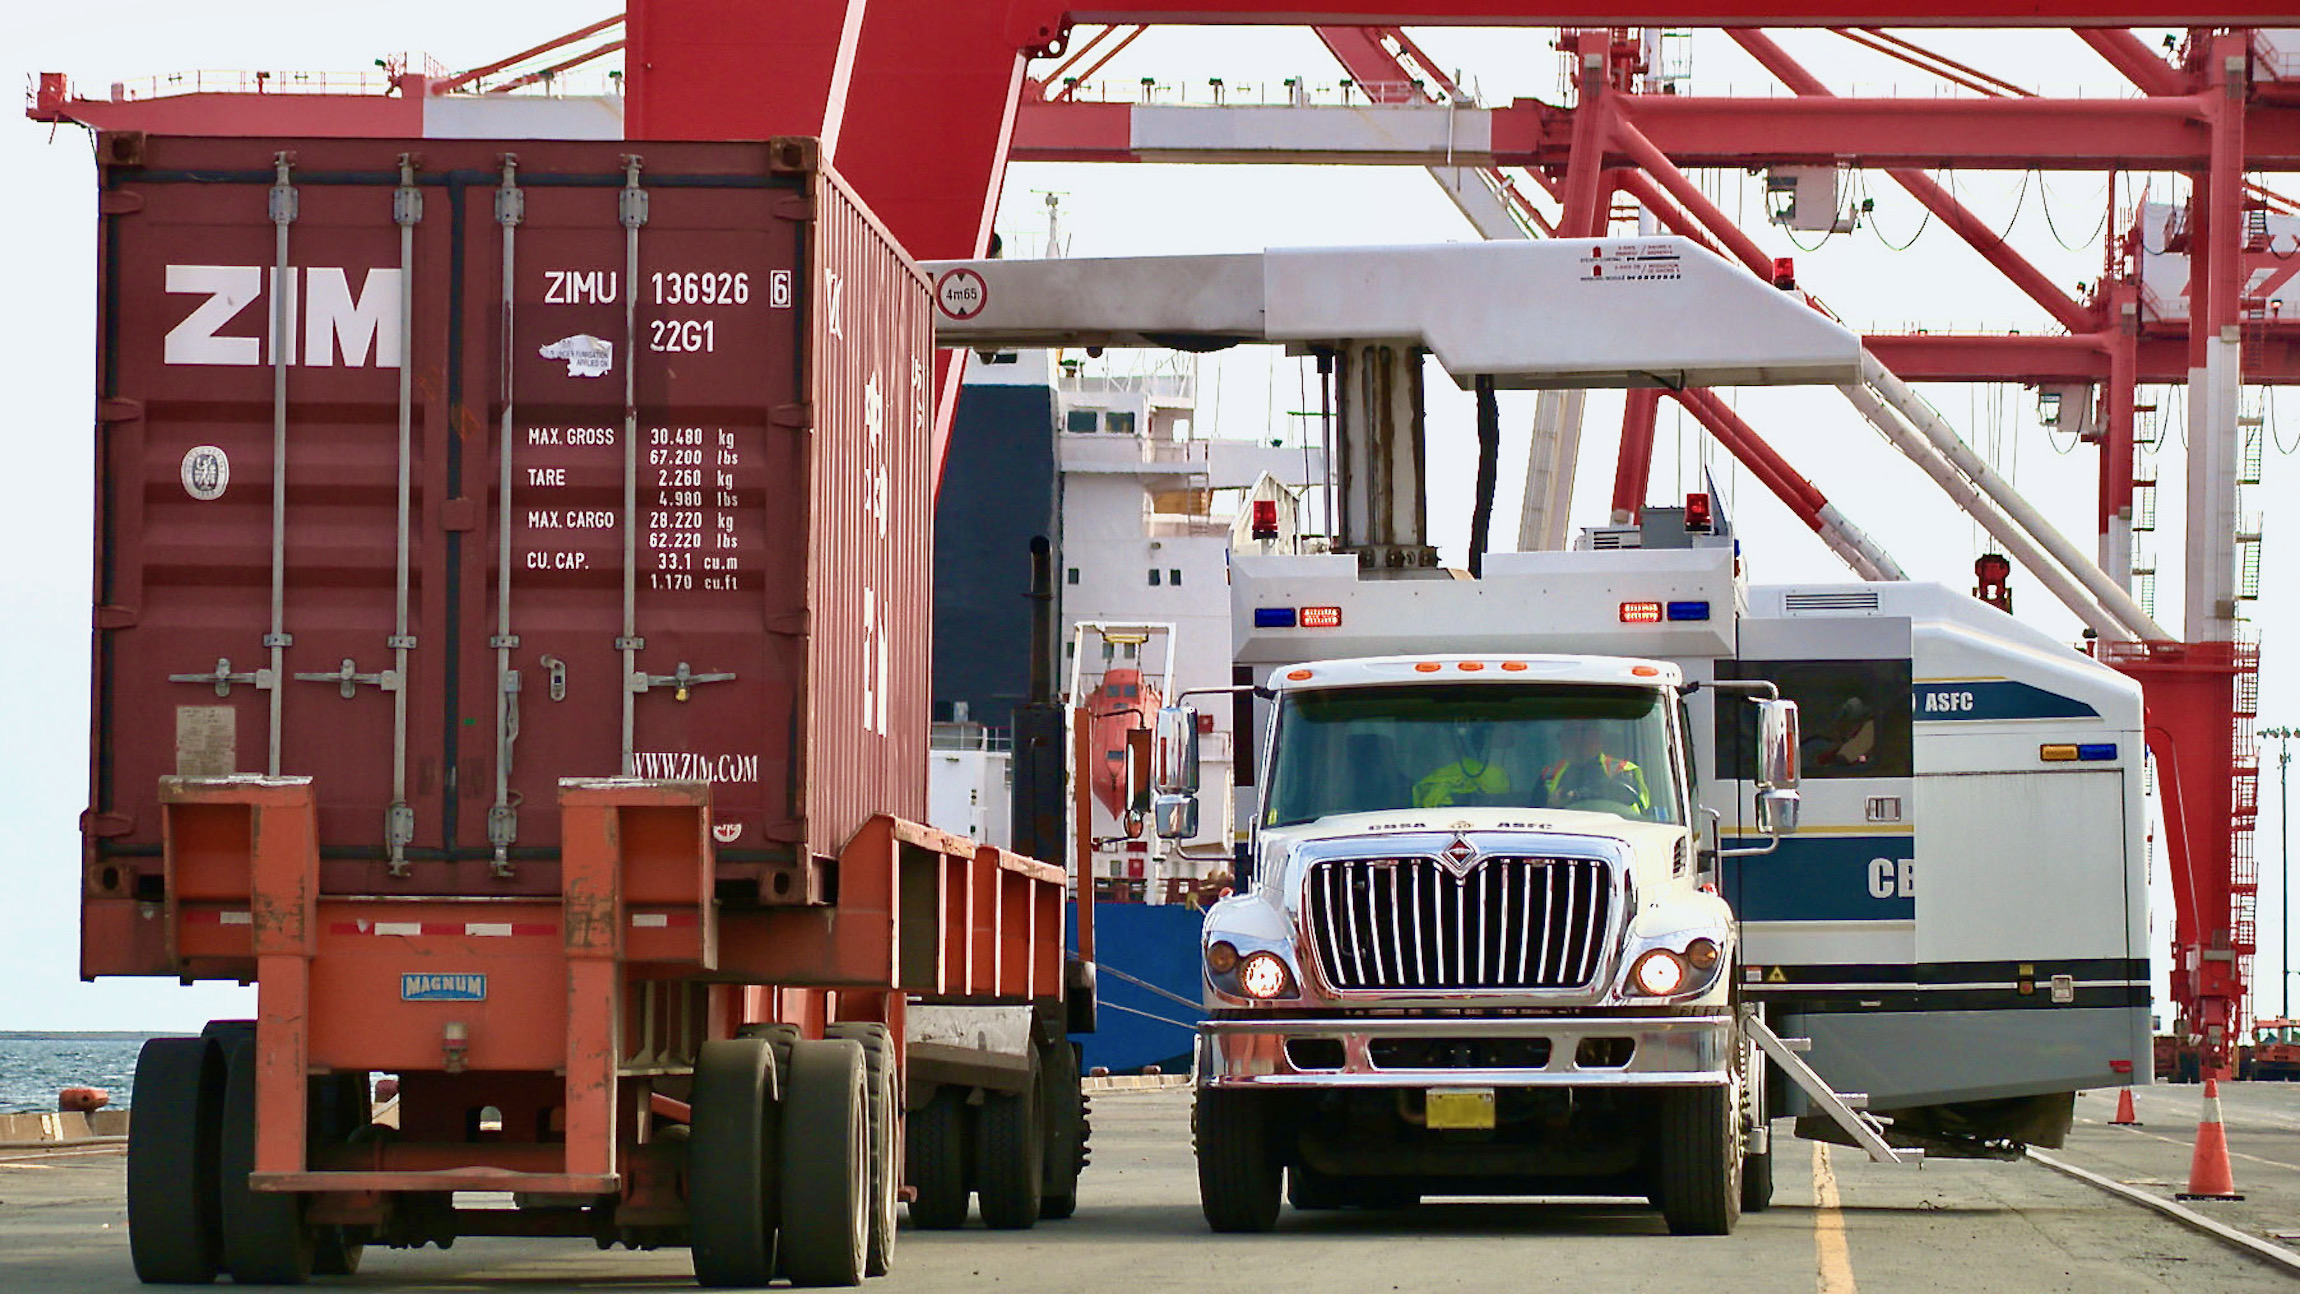 Canada Border Services Agency officers prepare to inspect a red intermodal container.